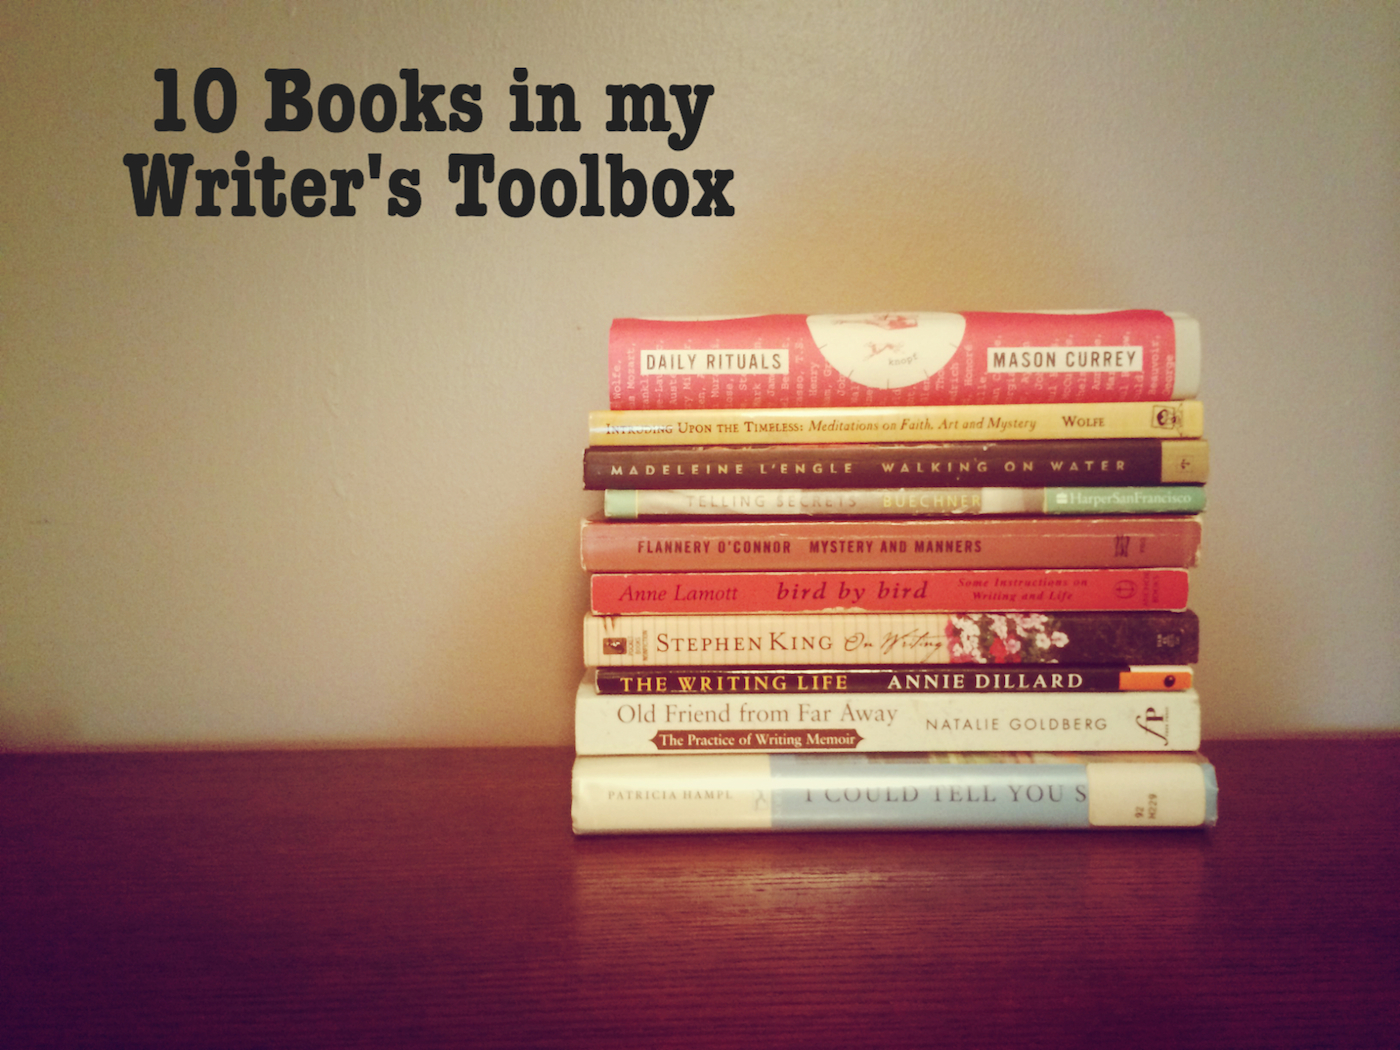 10 Books in my Writer's Toolbox